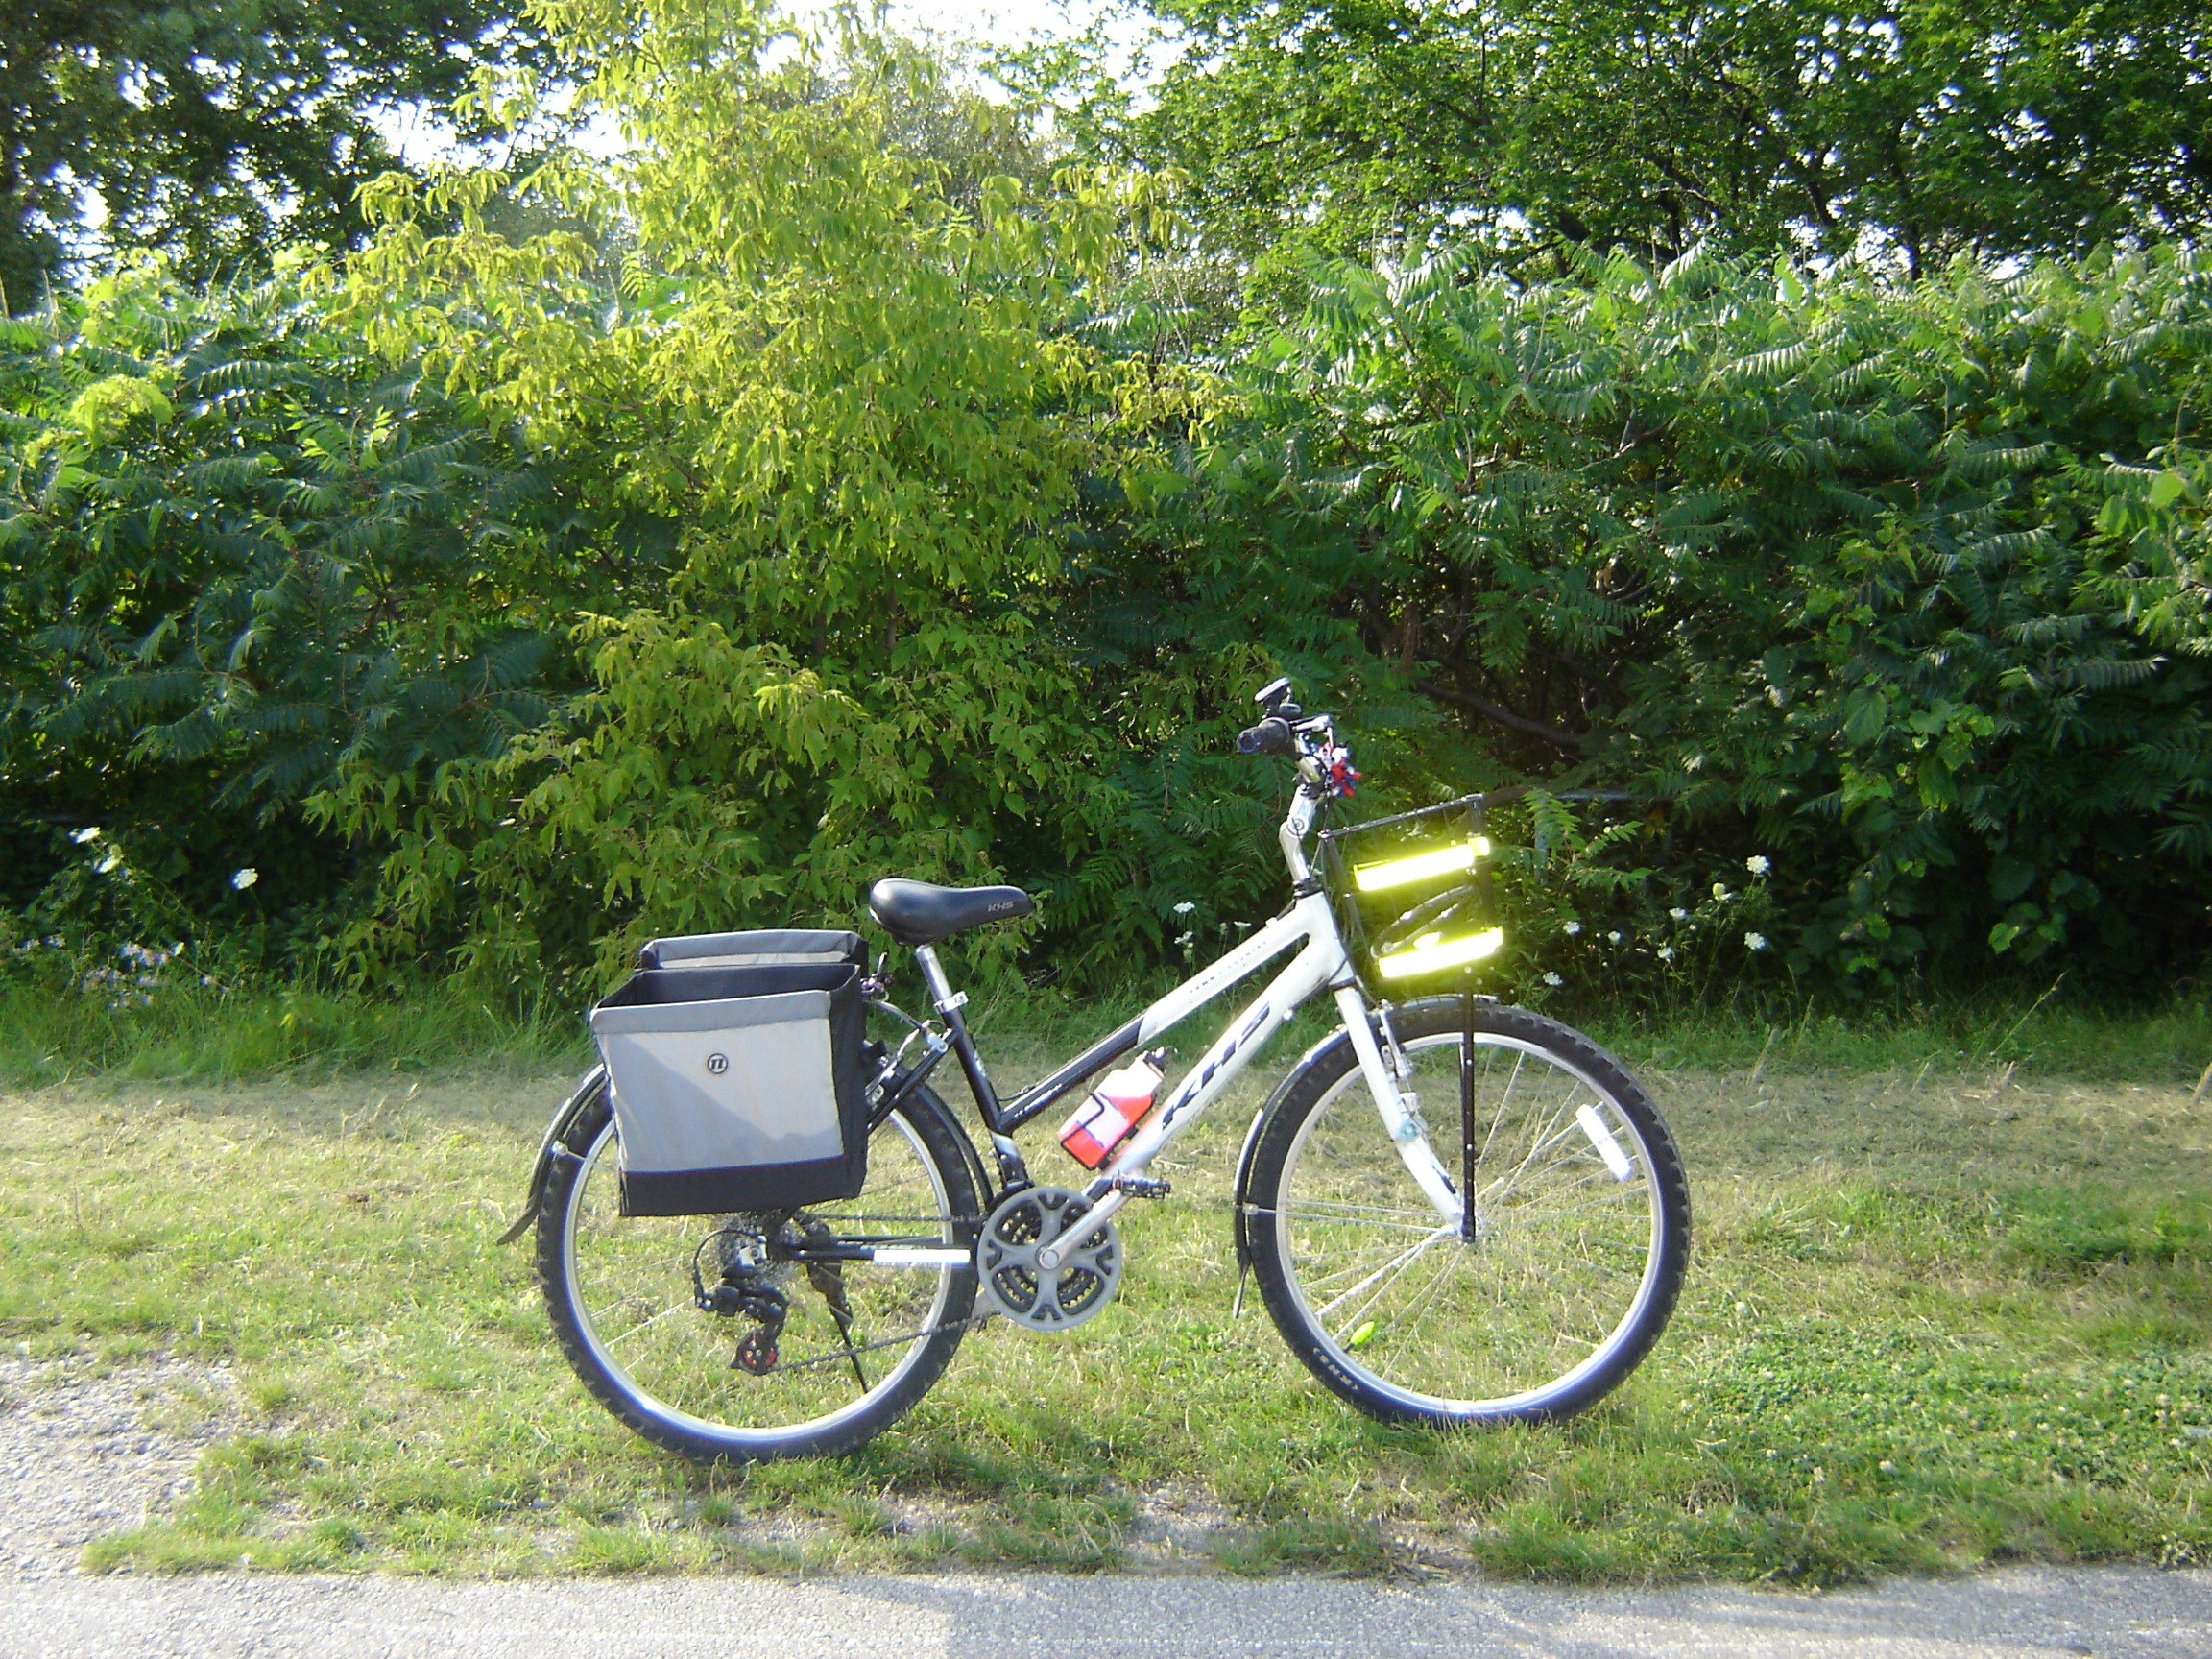 My bike on the Don Rive Trail this summer (with the new REI panniers).